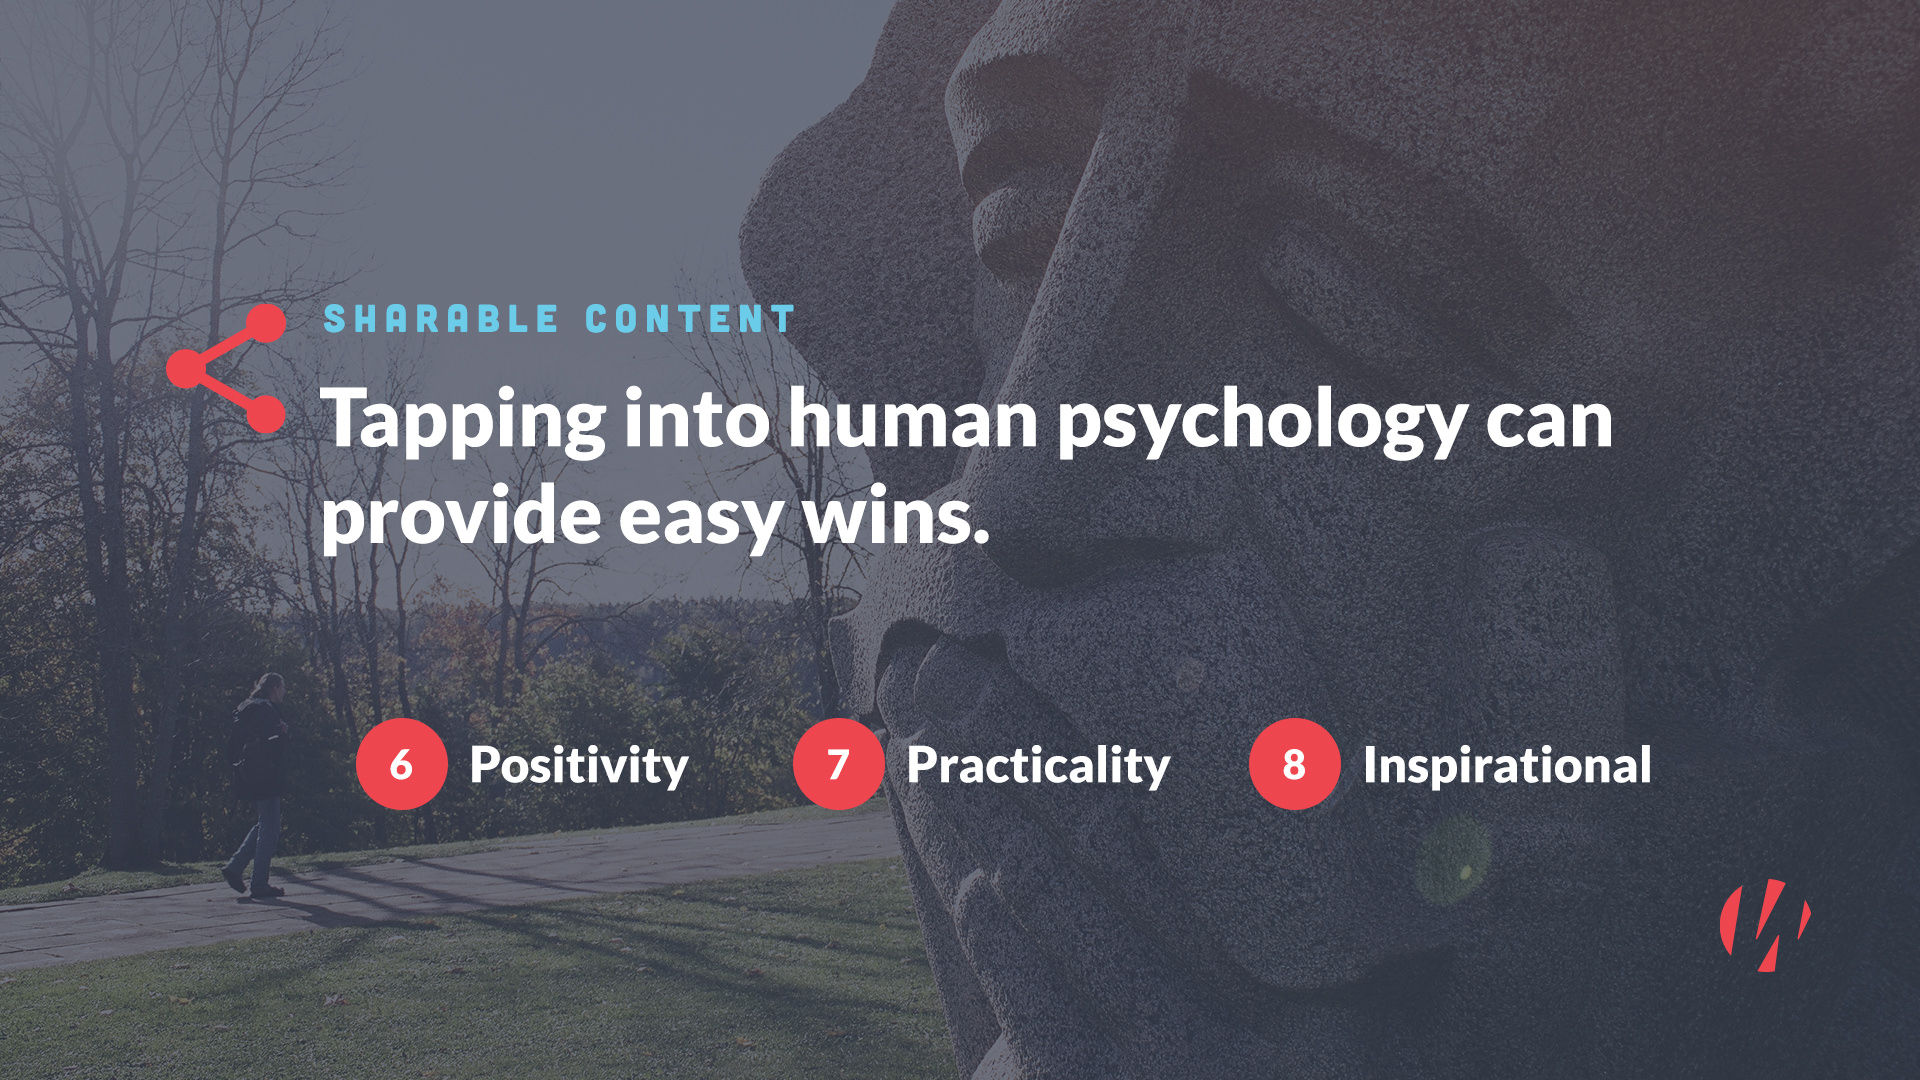 sharable content tips psychology